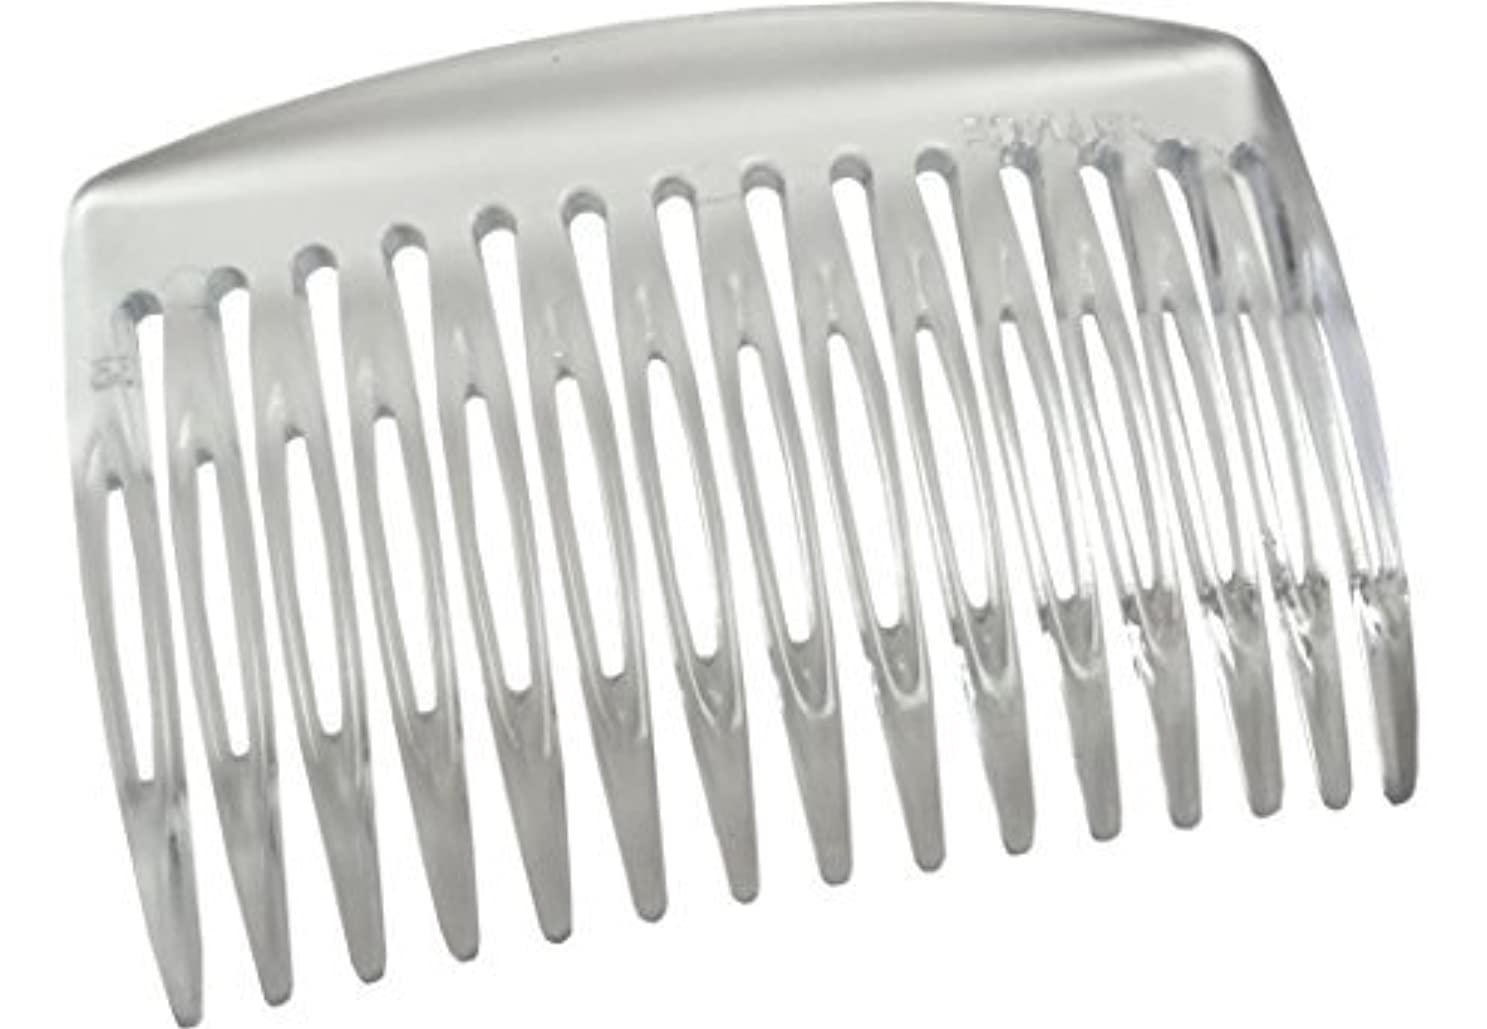 存在ピクニックをする食い違いParcelona French Nice N Simple Clear 2 Pieces Cellulose Acetate Clear 7 Cm Side Hair Comb Combs [並行輸入品]